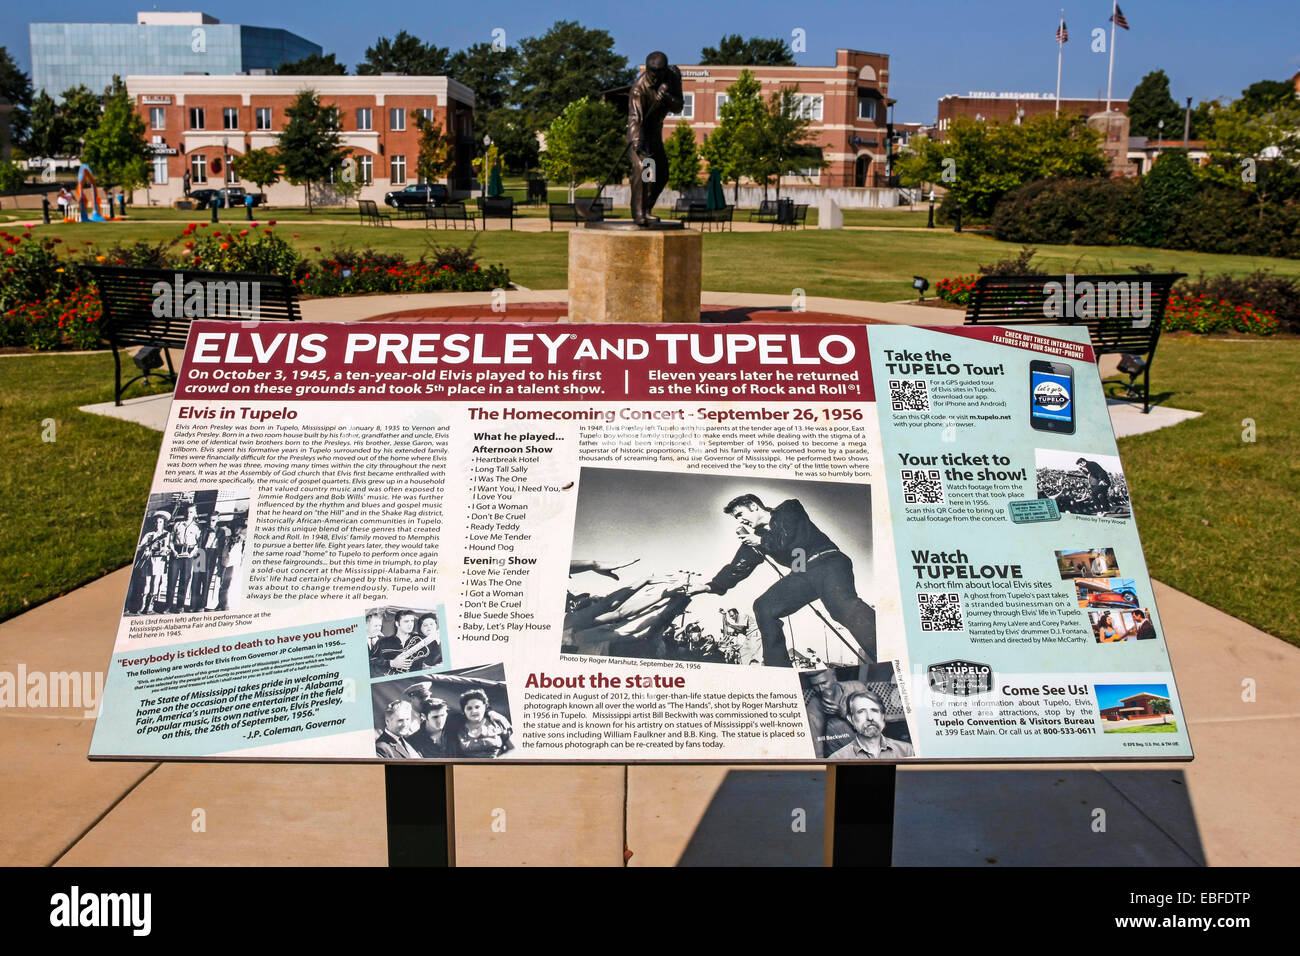 Information plaque about the Elvis Homecoming Statue in Fairpark. Site of the 1956 Elvis homecoming concert Tupelo - Stock Image